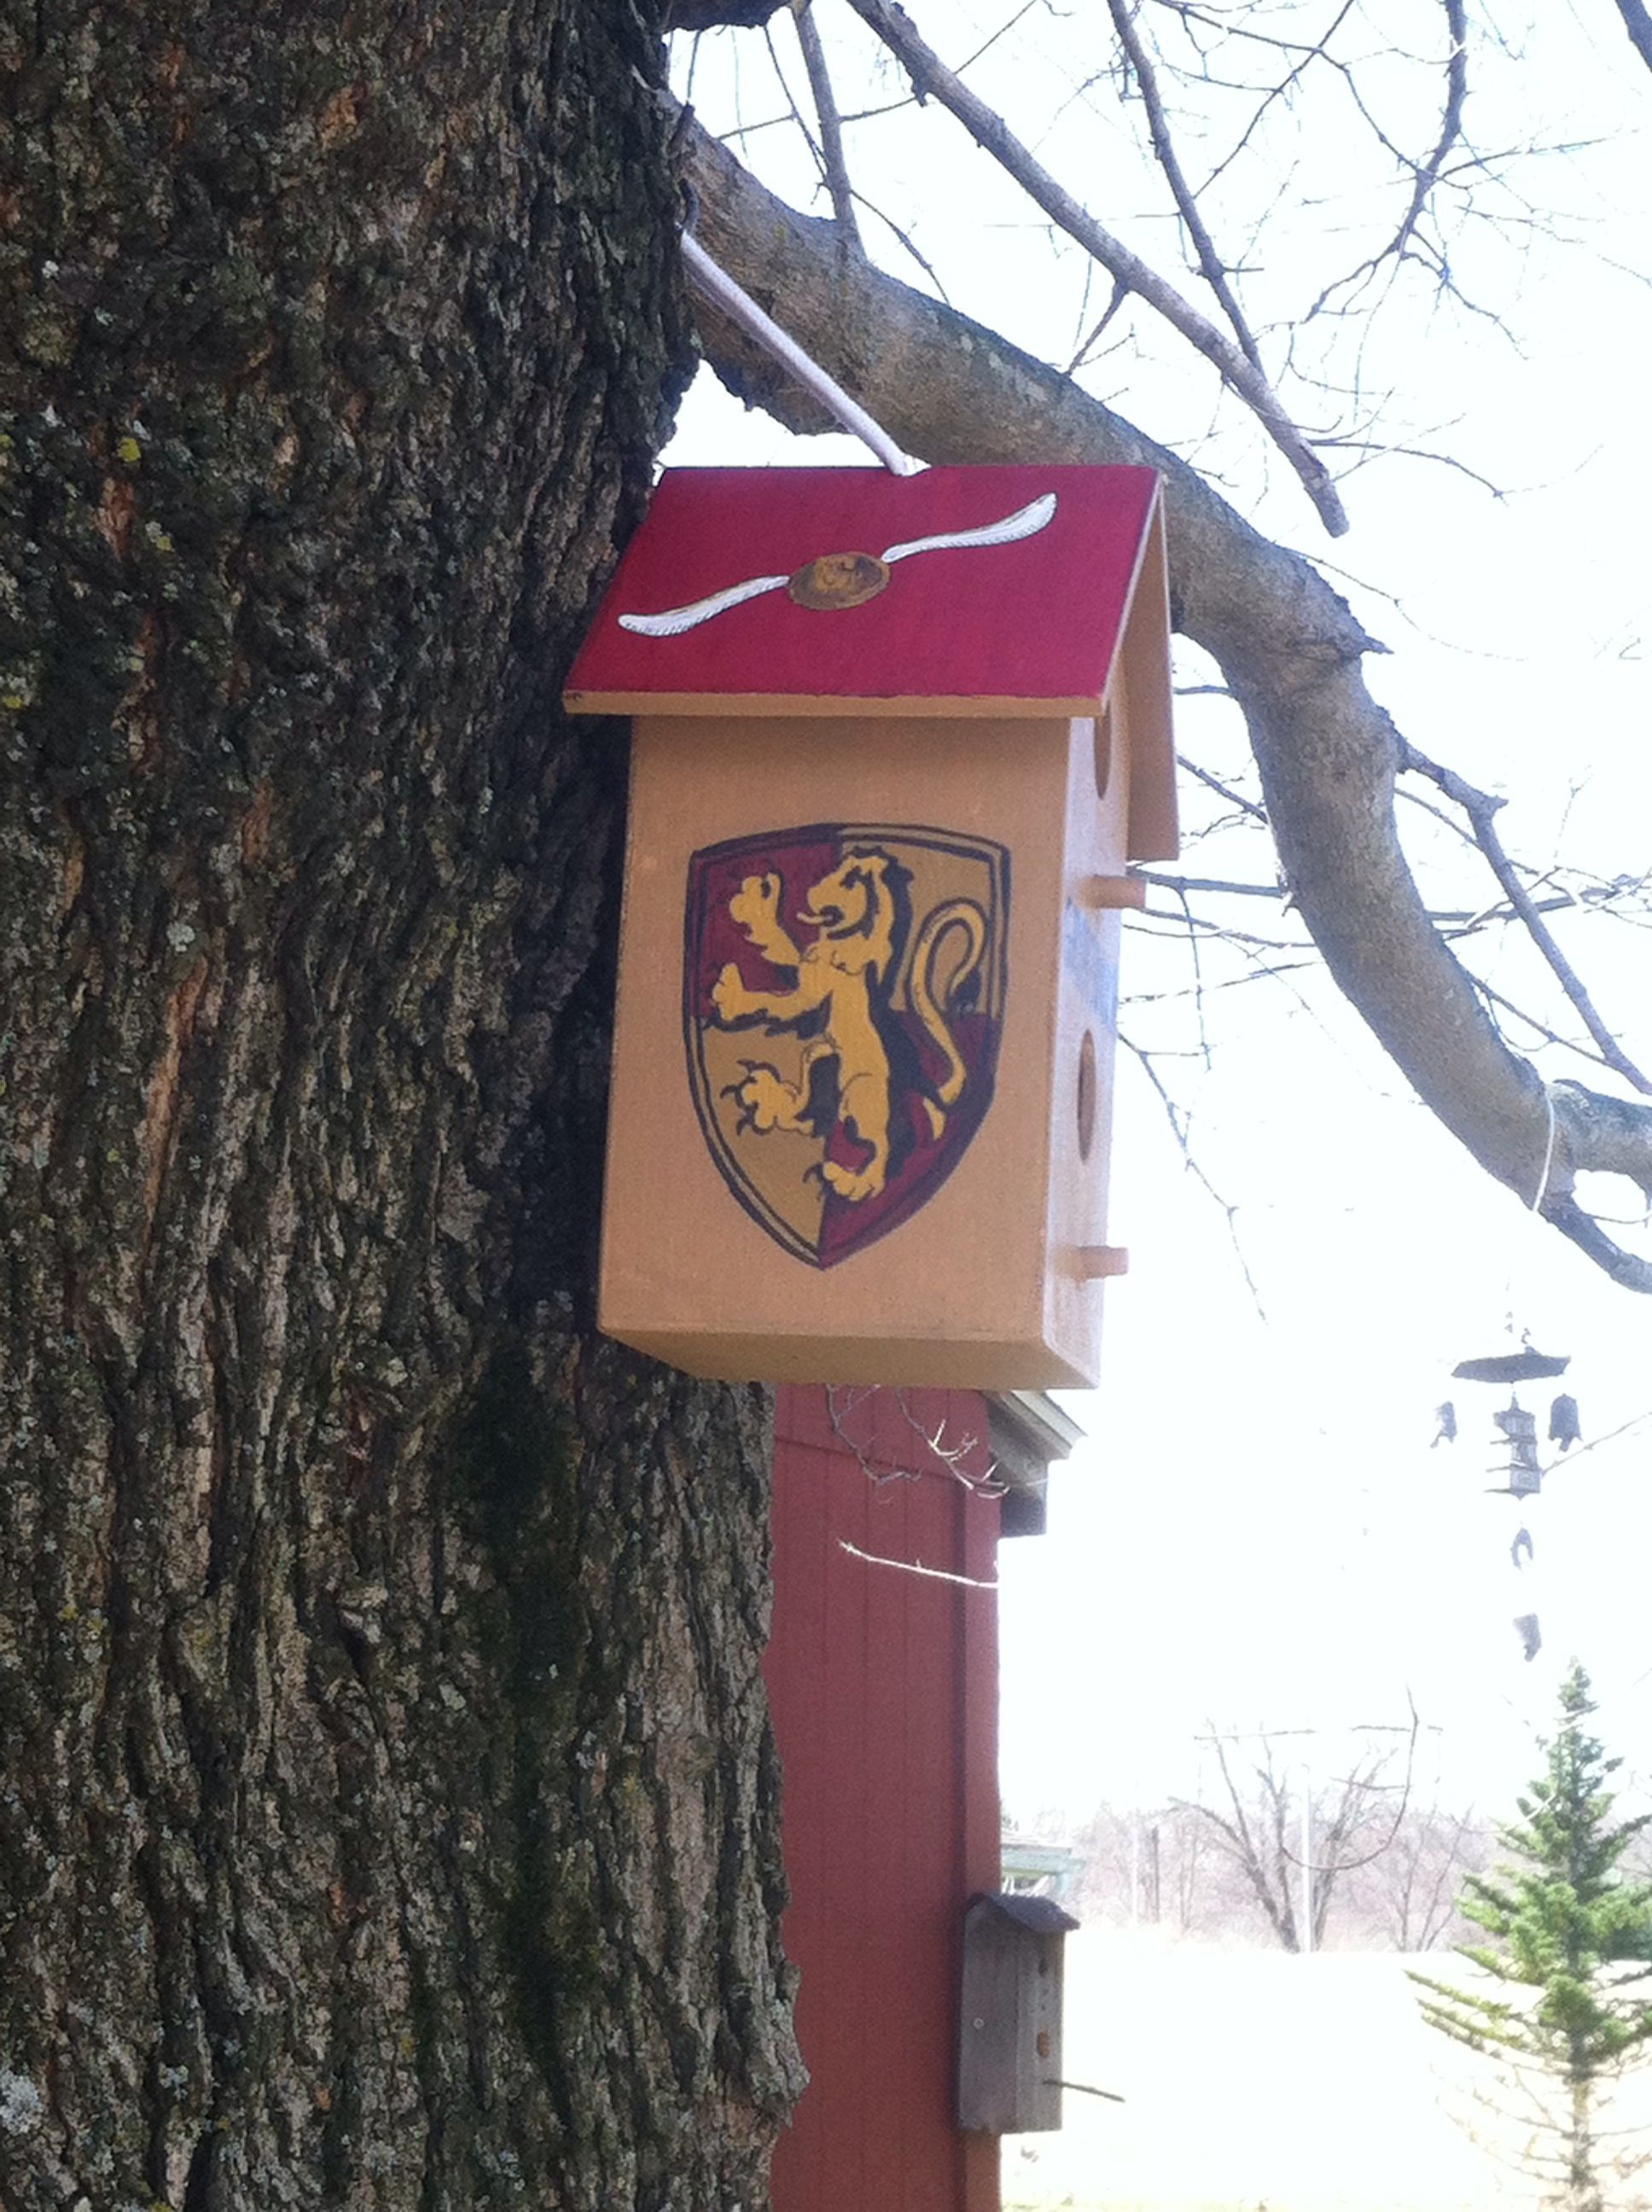 My Harry Potter Themed Bird House Used My Mad Skills To Paint This Plain House Bird House Outdoor Decor Brid House